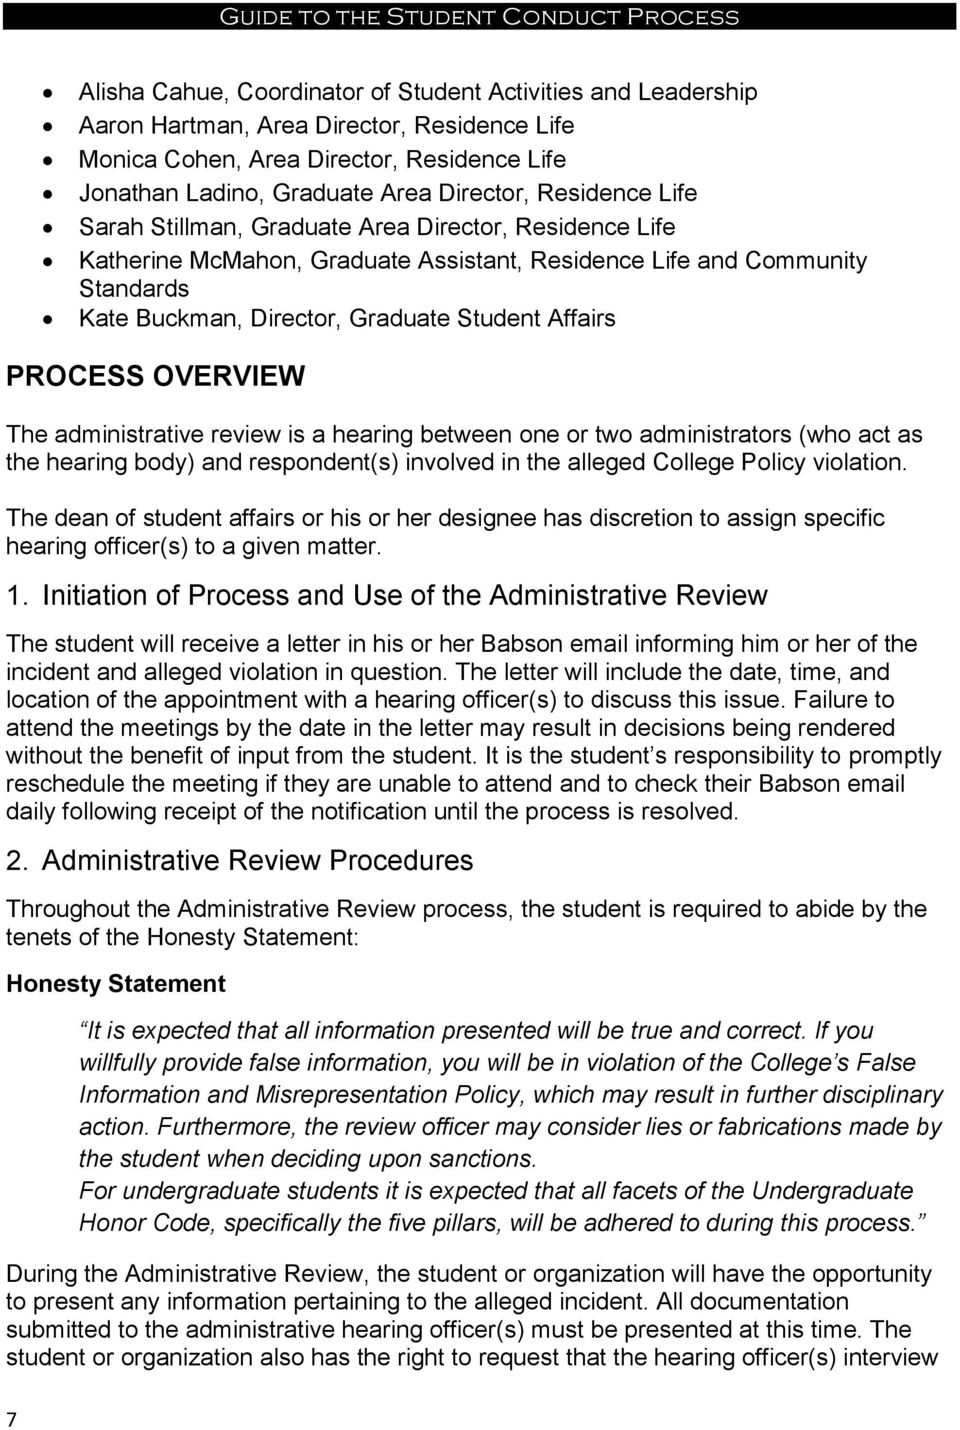 PROCESS OVERVIEW The administrative review is a hearing between one or two administrators (who act as the hearing body) and respondent(s) involved in the alleged College Policy violation.